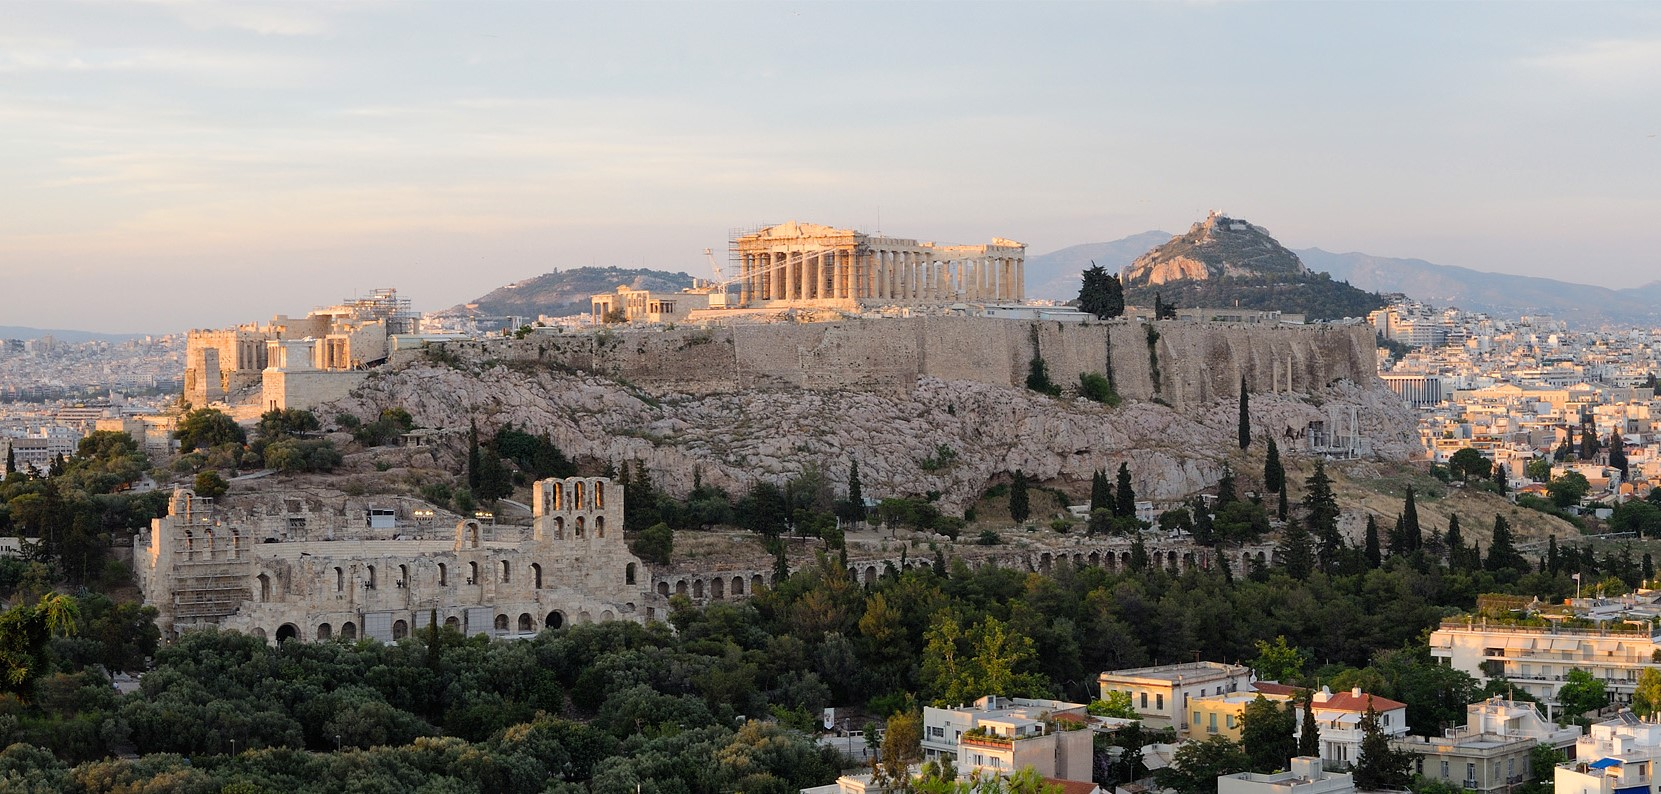 View_of_the_Acropolis_Athens_(pixinn.net)